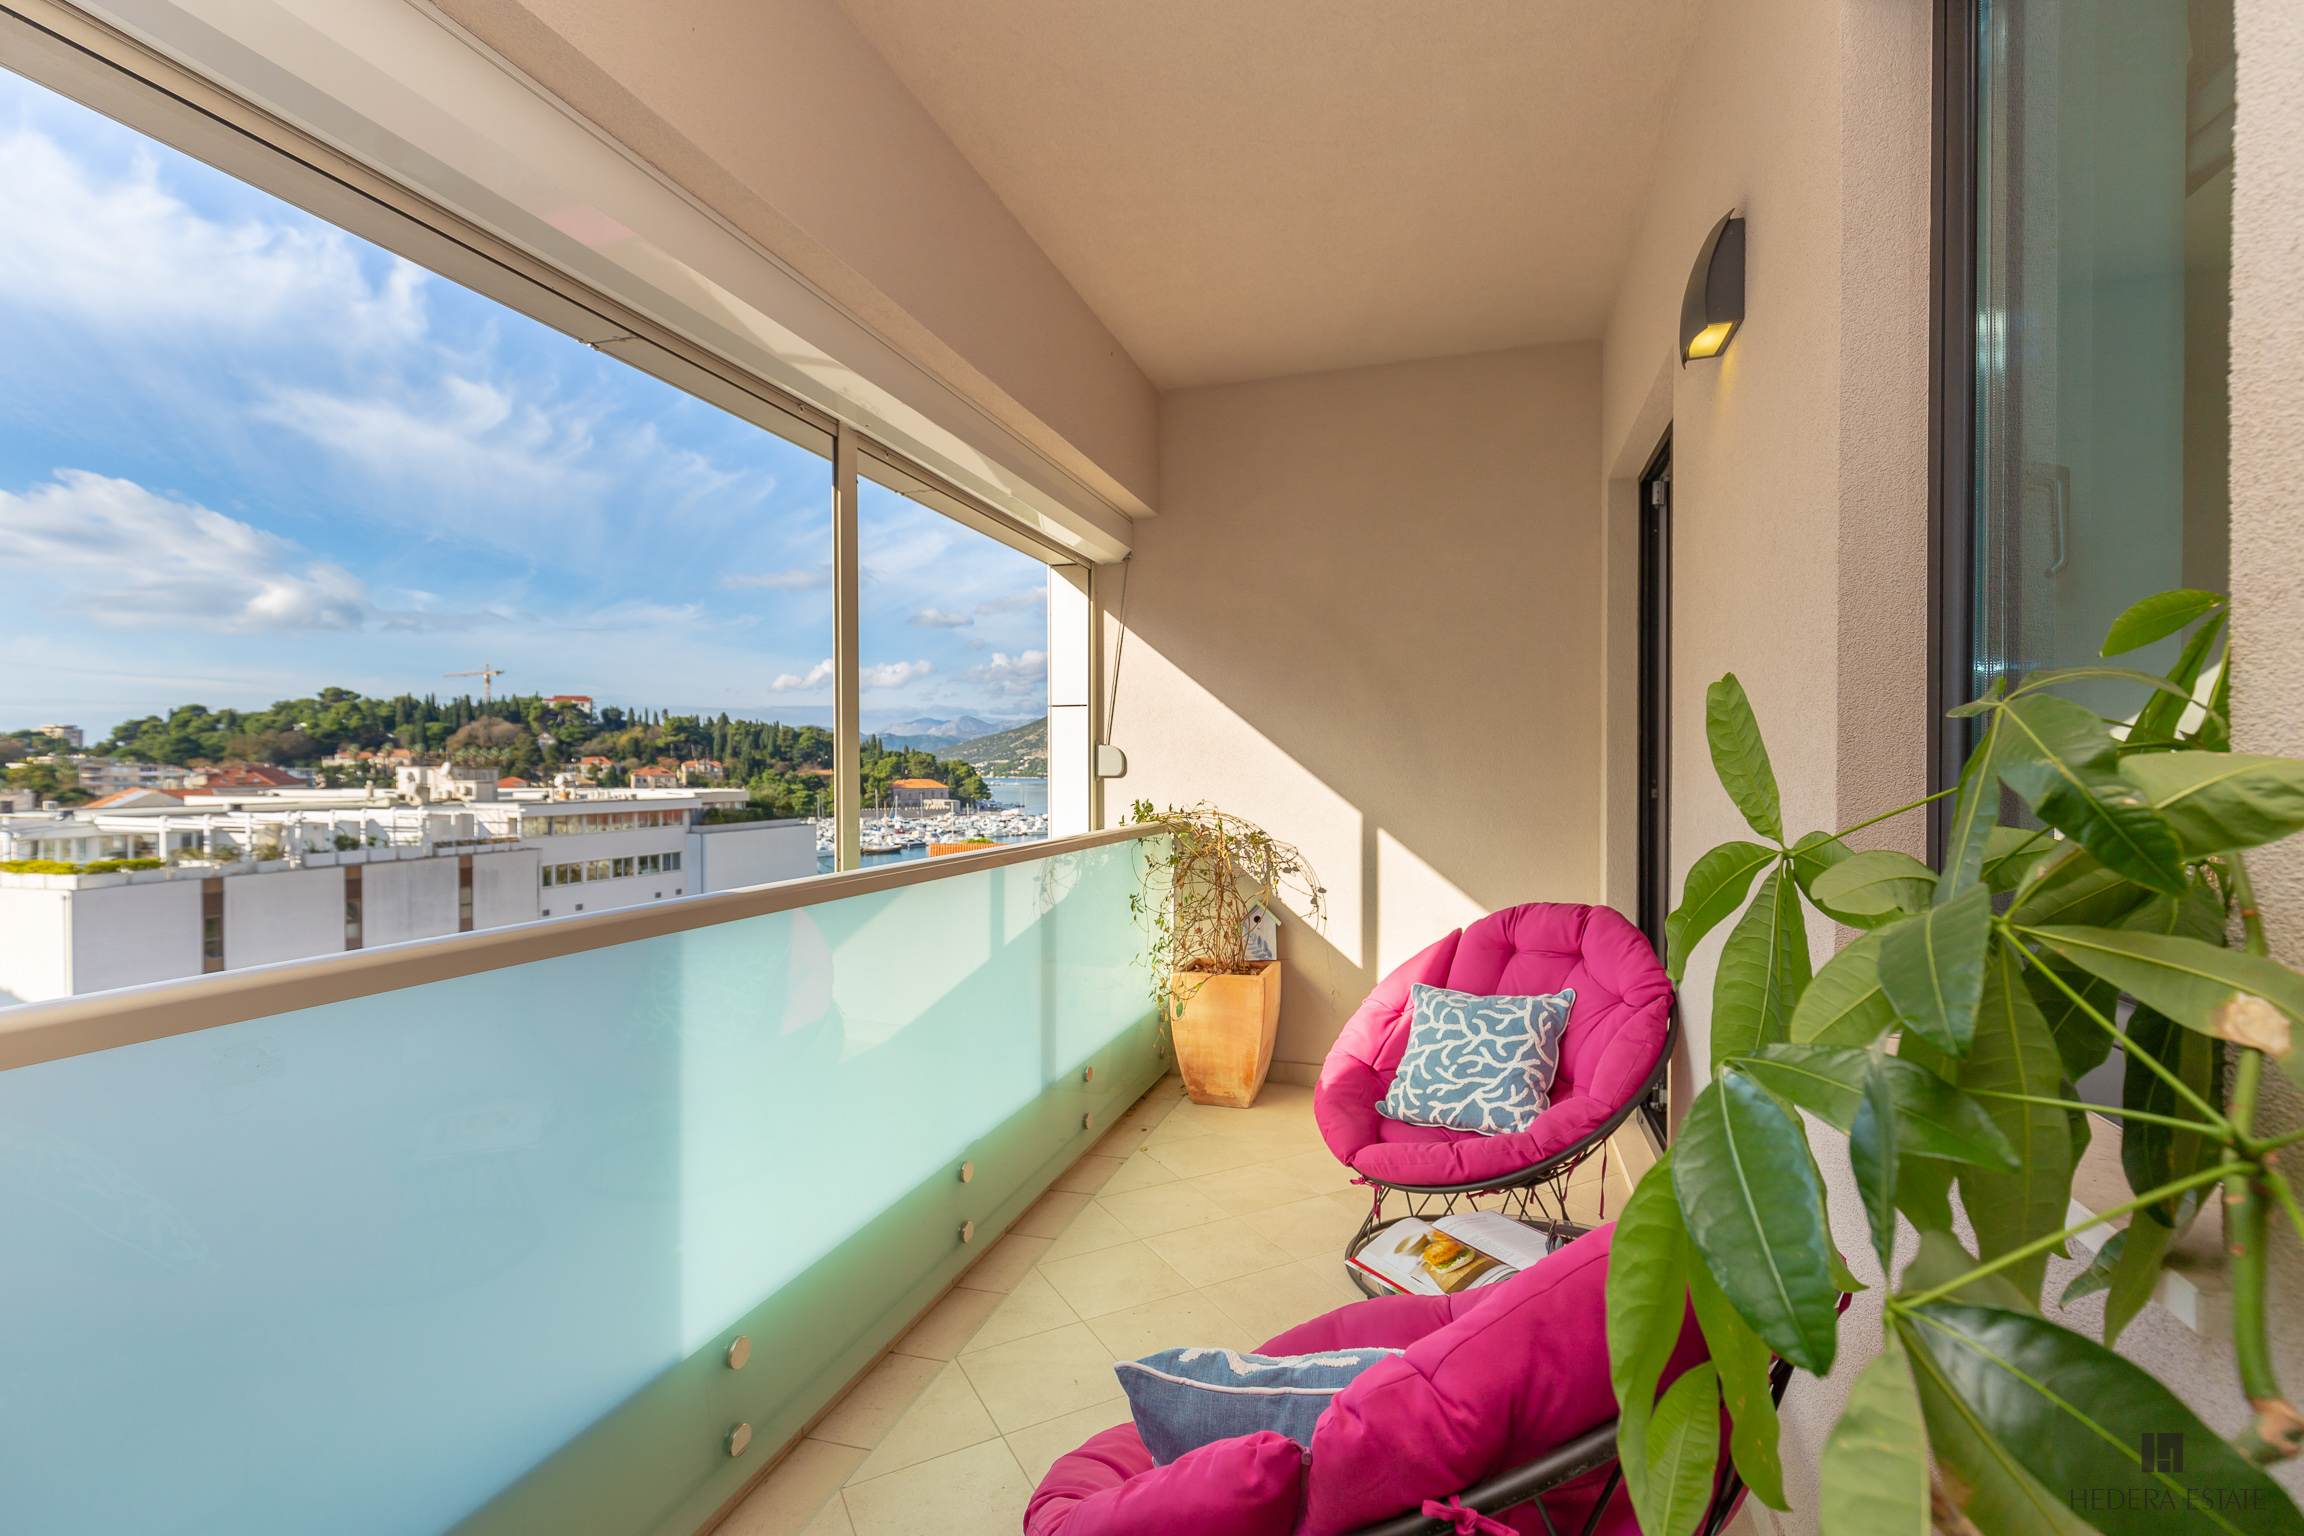 <p>Sleeps 4 (+2)<br />2 bedrooms<br />2,5 bathrooms<br />A covered balcony<br />Kitchen, dining area and living room<br />Distance to the beach: 15 minutes walk<br />Distance to Old Town: 20 minutes walk</p>